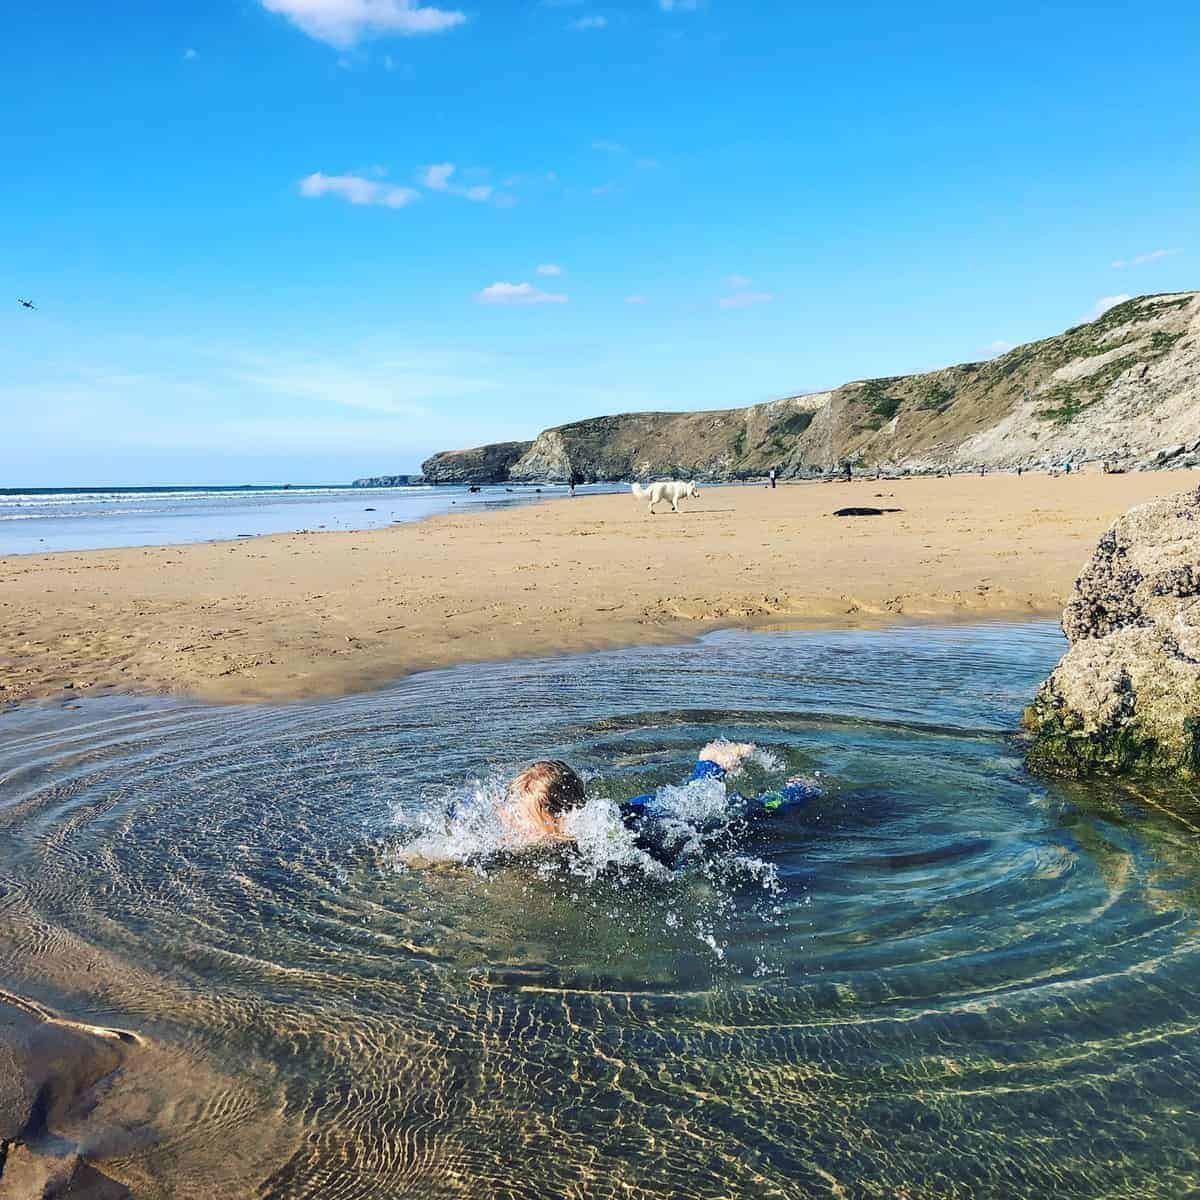 girl diving in rockpool